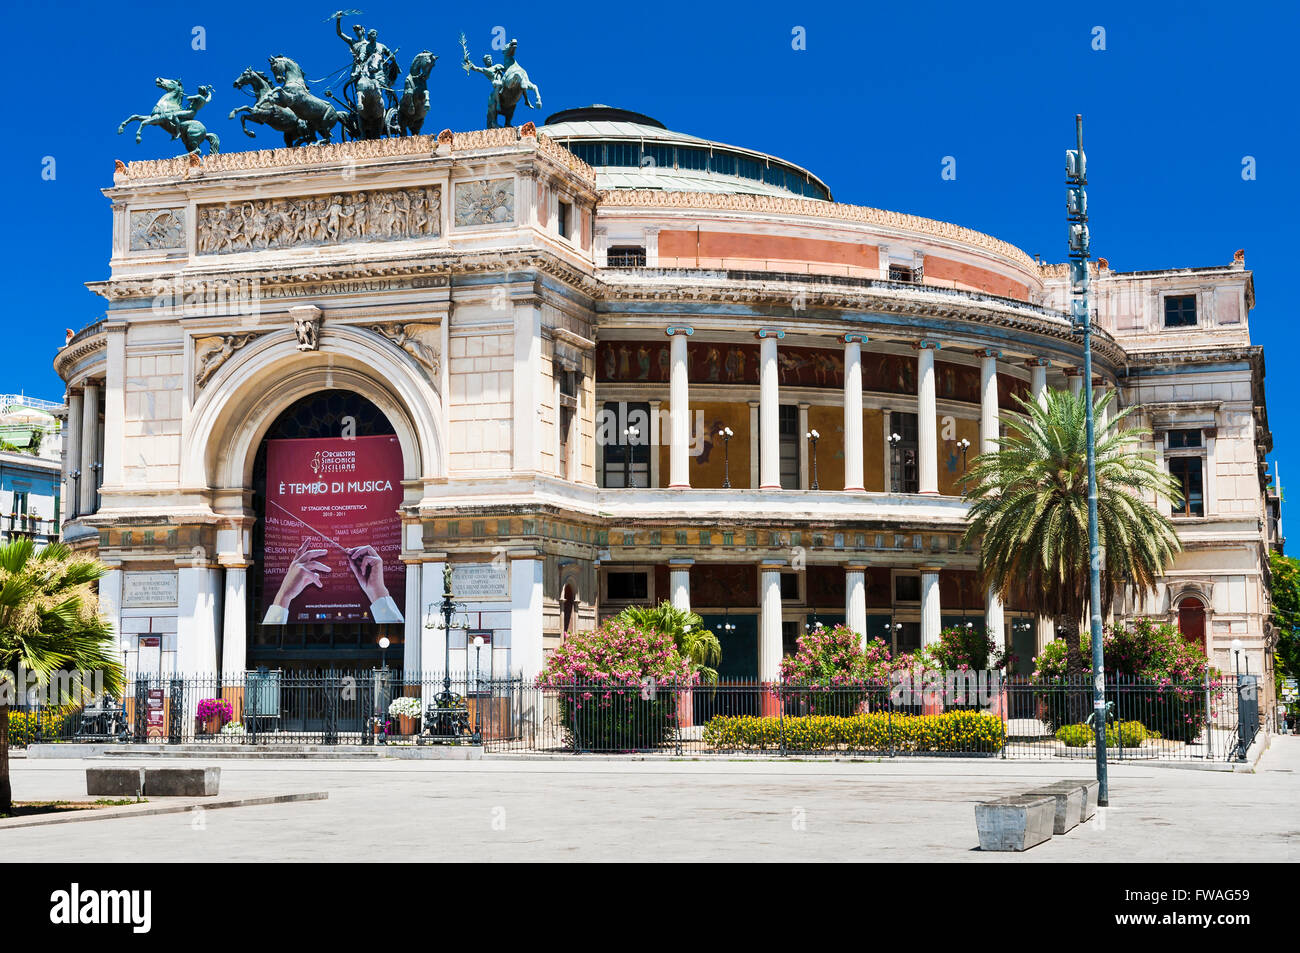 Politeama Theatre. Palermo, Sicily, Italy. Stock Photo